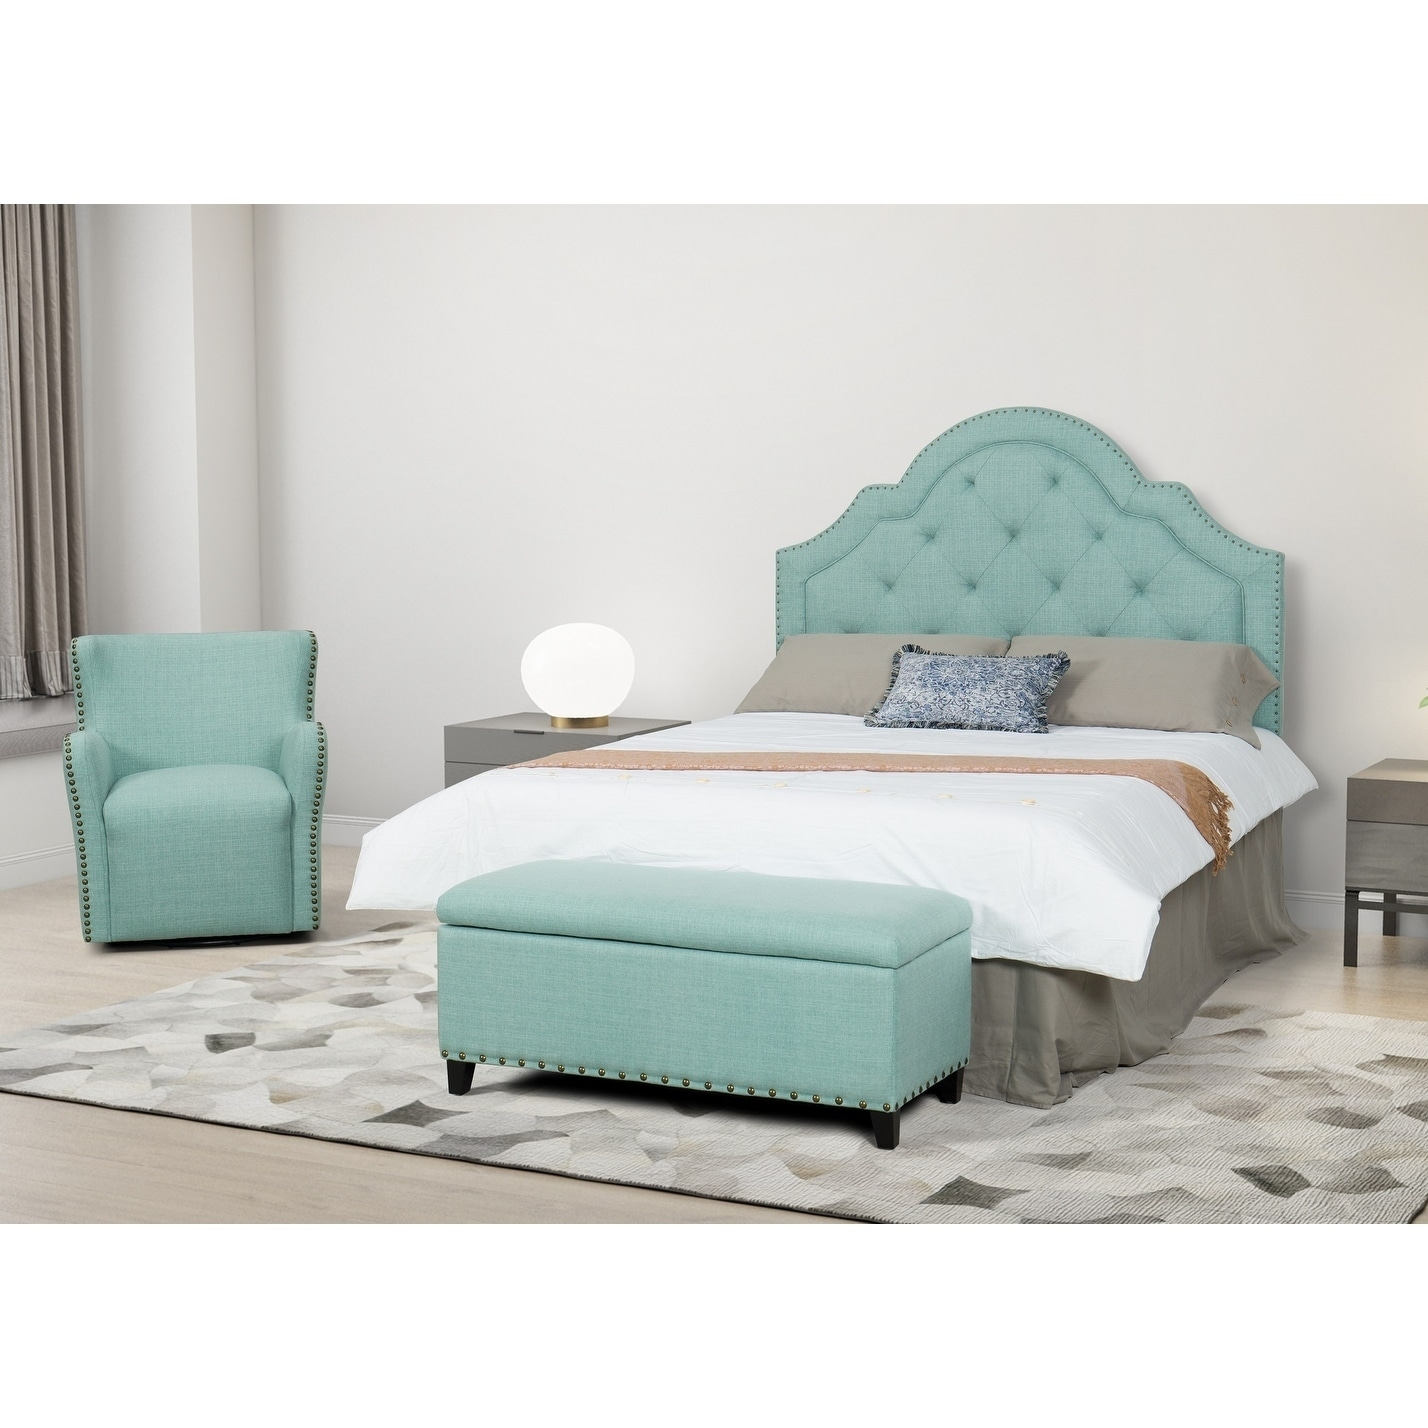 Crosstown Arched Upholstered Head Board (Green - Queen)